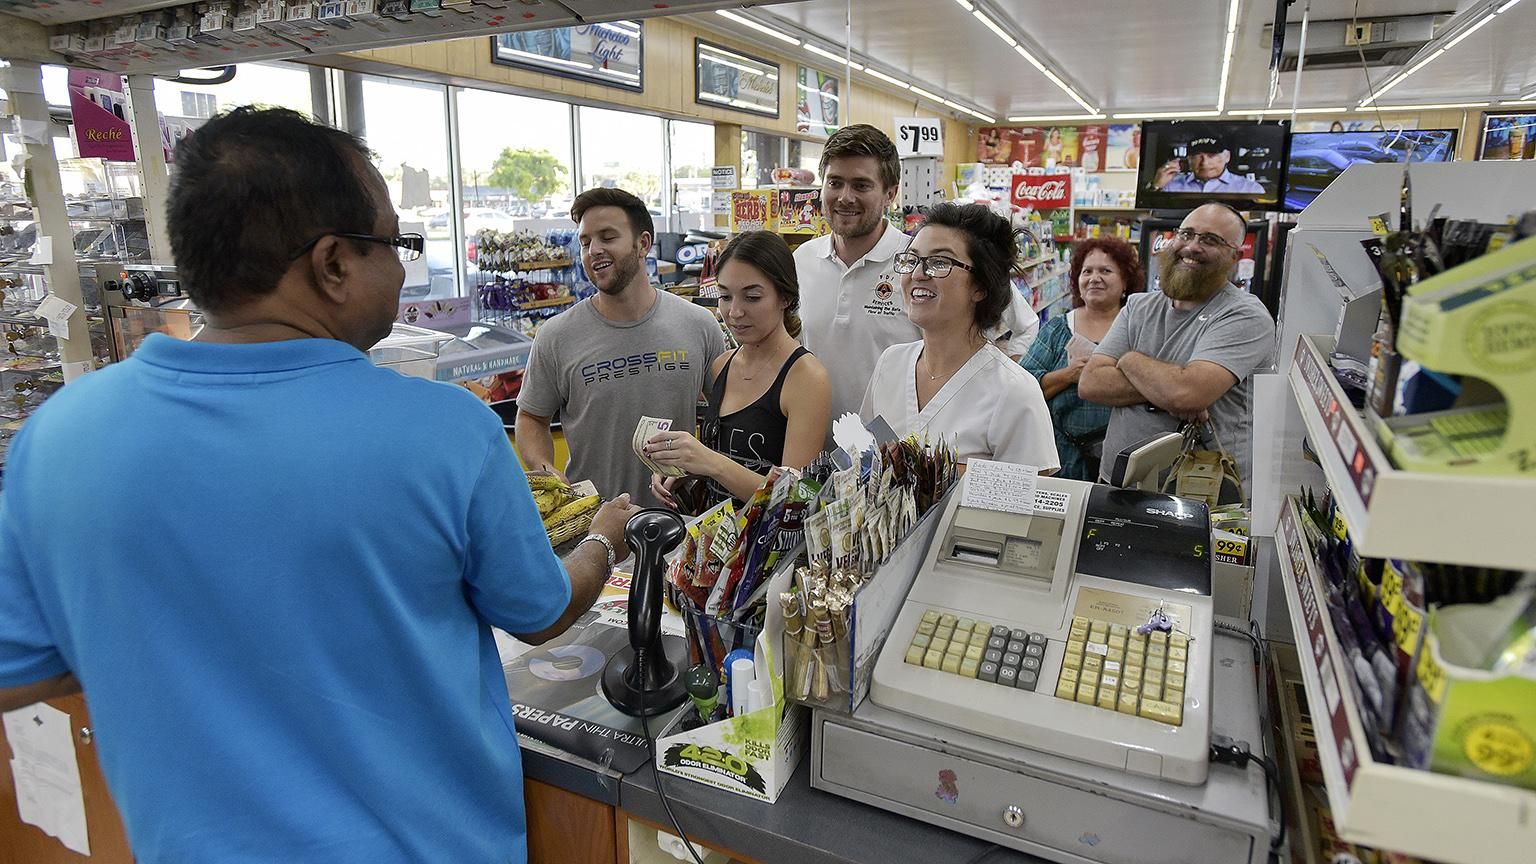 People line up at the Kwik Stop food store at 46th Avenue and Hollywood Boulevard, in Hollywood, Fla., to buy Mega Millions lottery tickets on Friday, Oct. 19, 2018.  (Michael Laughlin / South Florida Sun-Sentinel via AP)